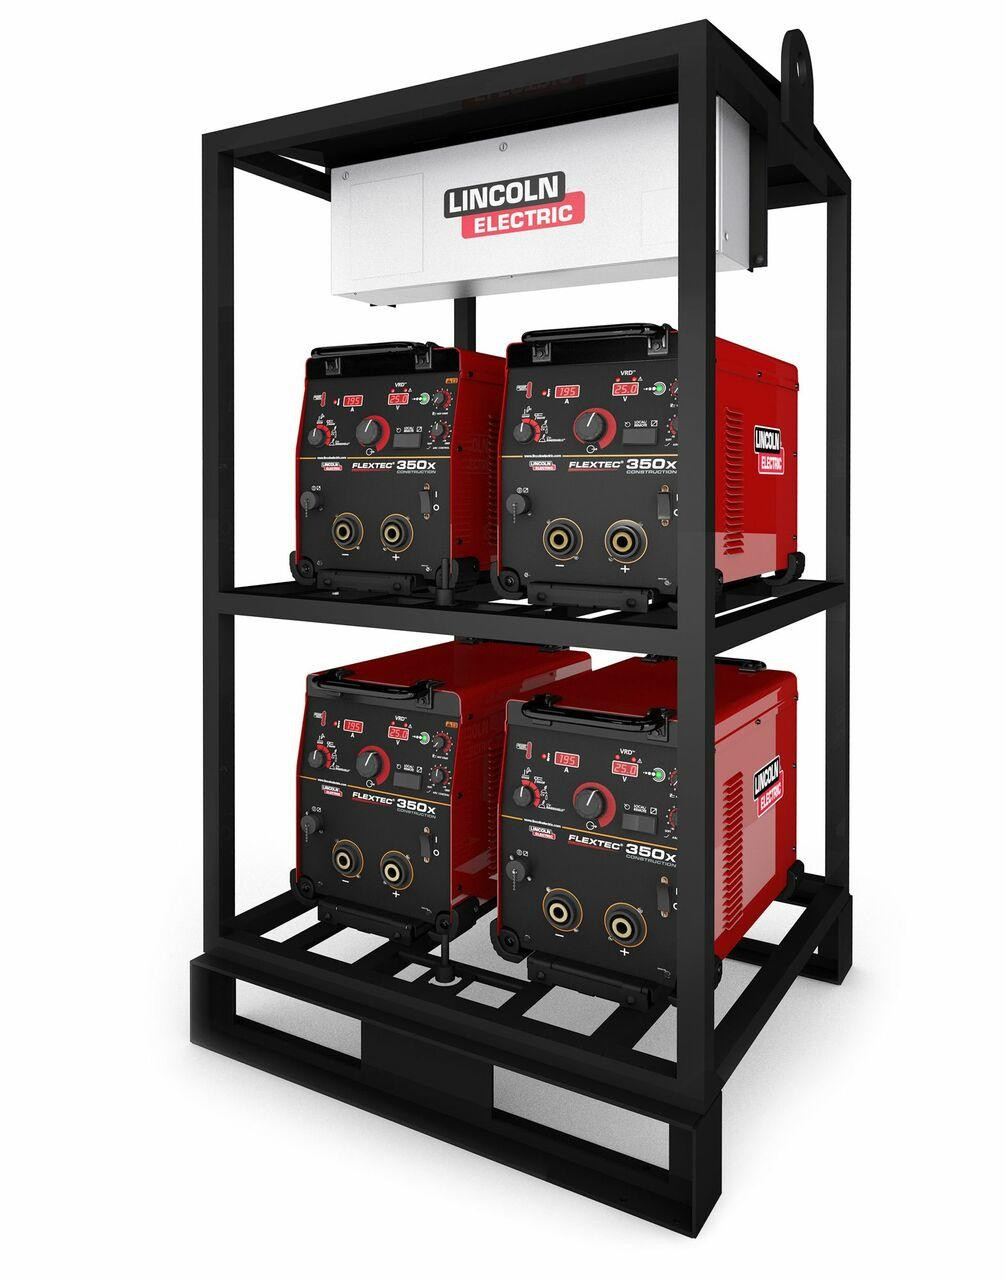 Lincoln Electric Lincoln Electric 4-PACK RACK FLEXTEC 350X CONSTRUCTION MODEL - K4276-1